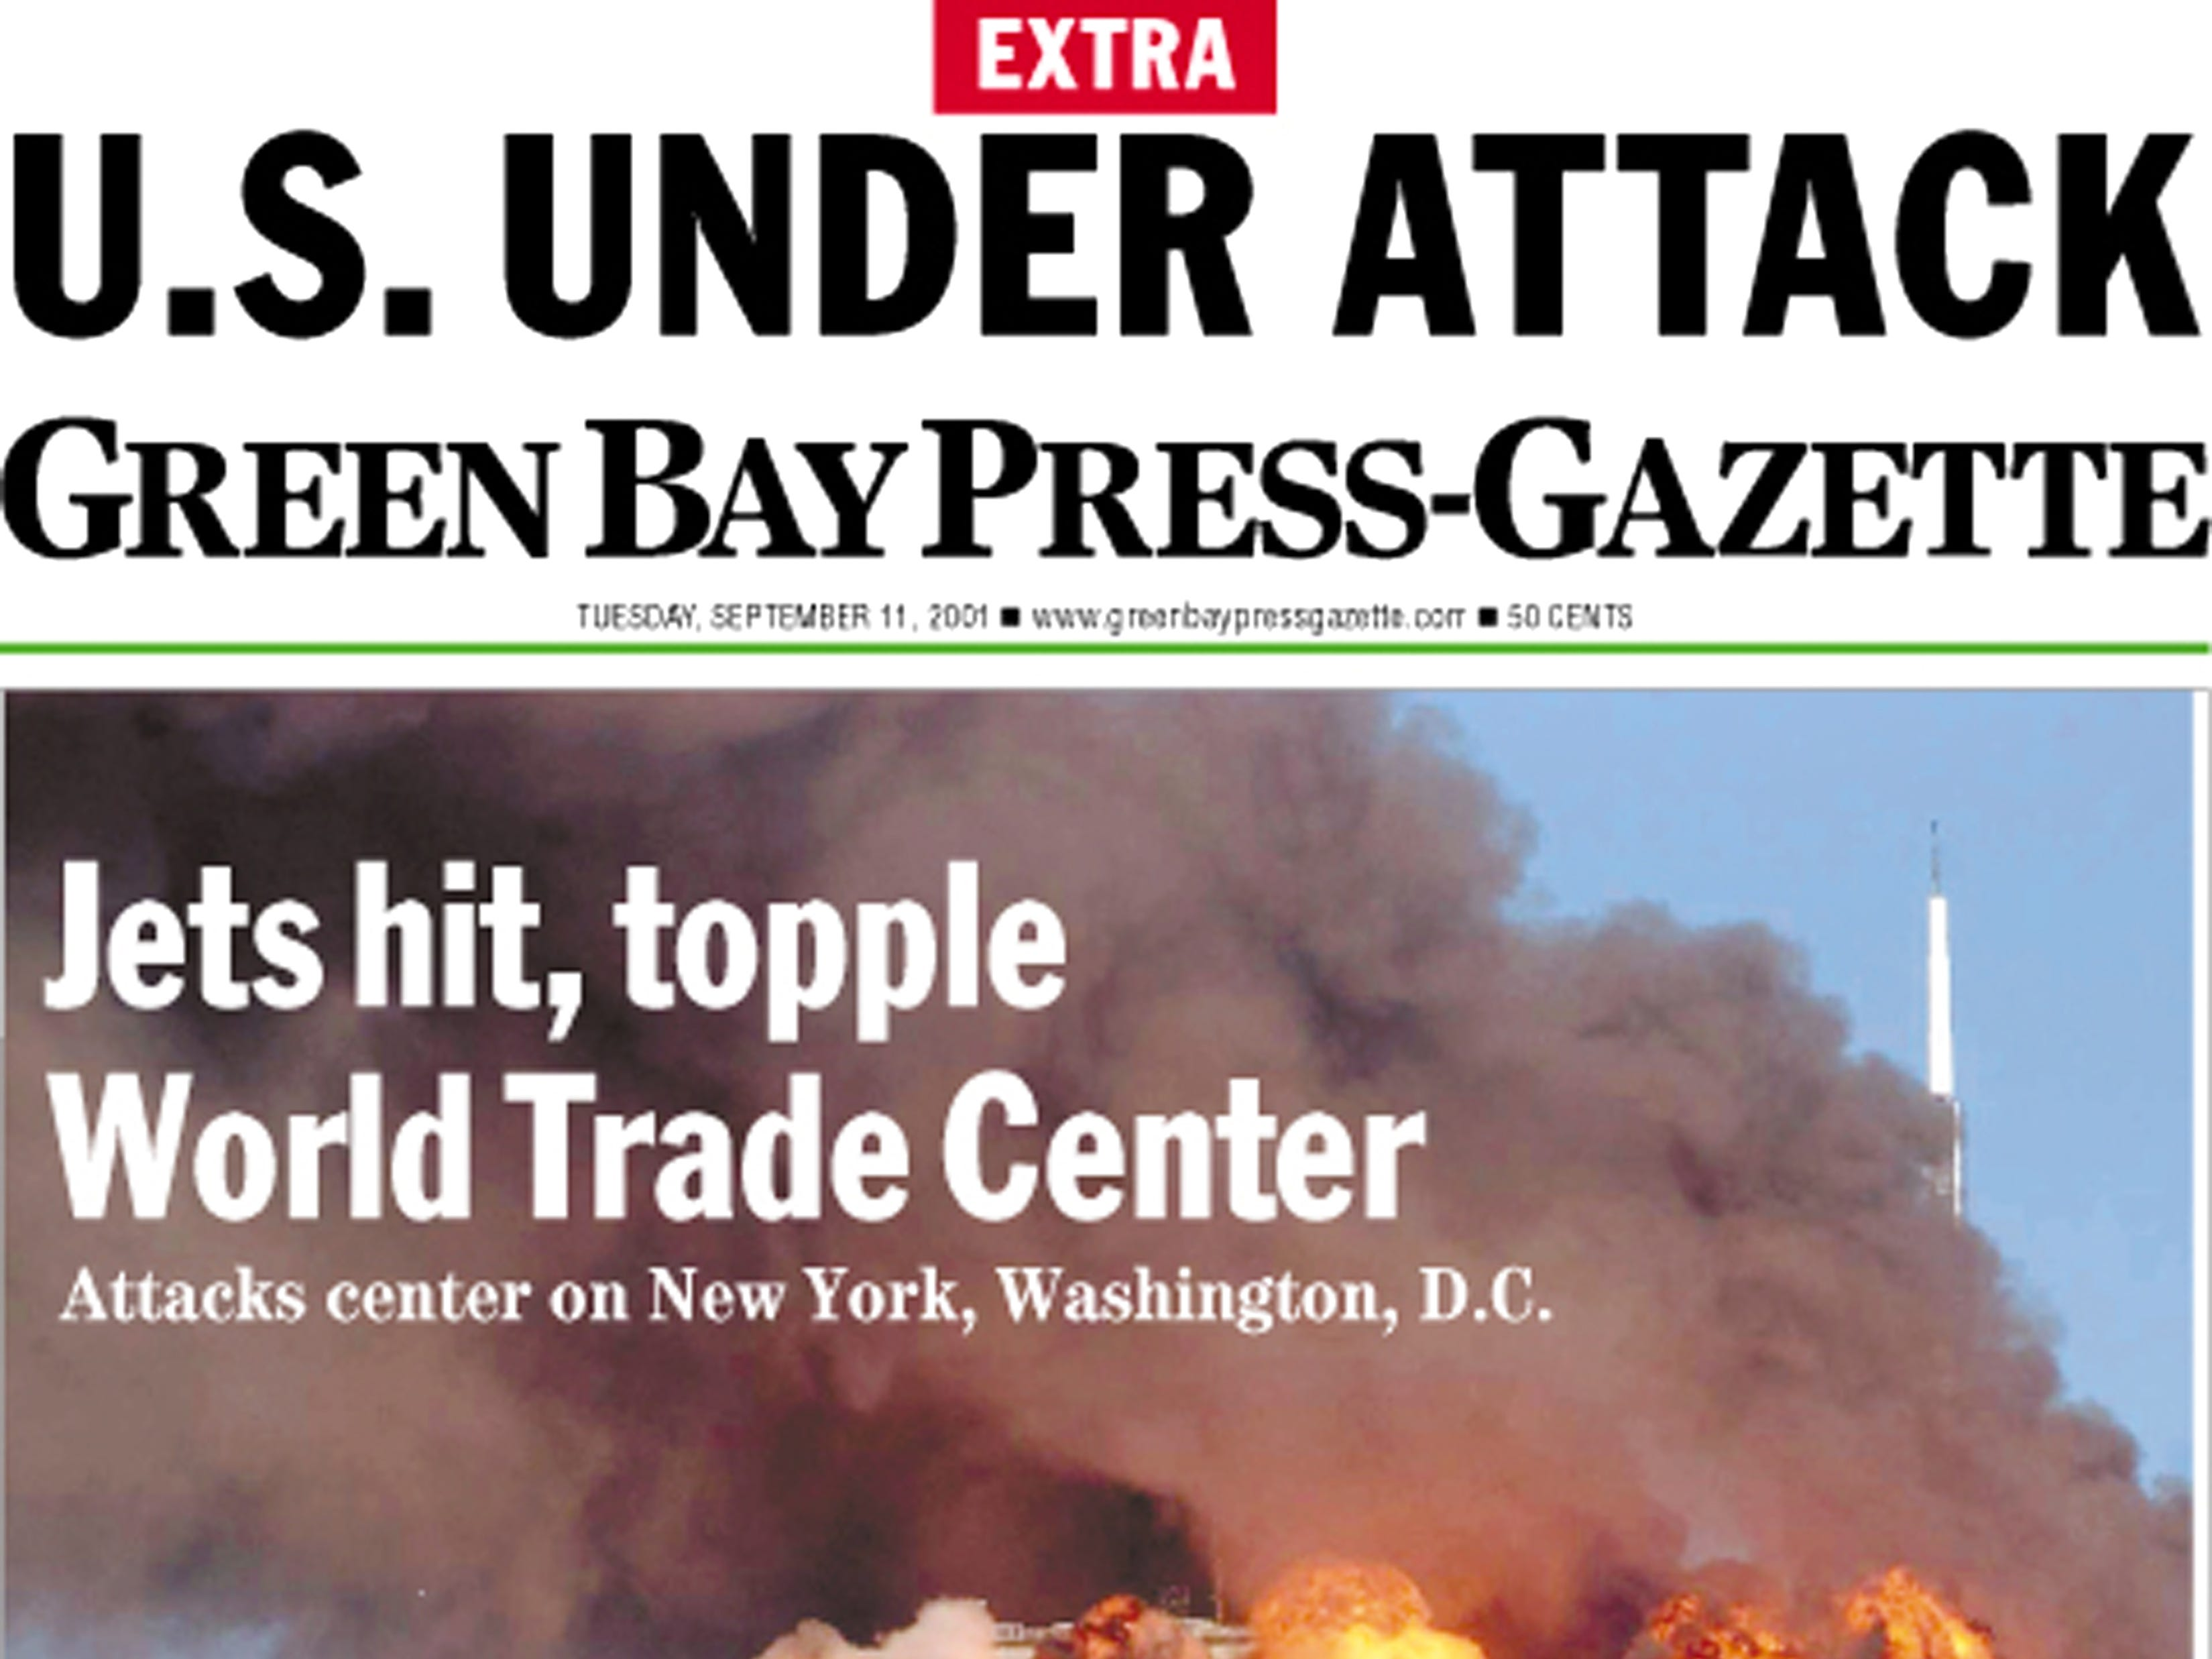 Front page of The Green Bay Press-Gazette on Sept. 12, 2001